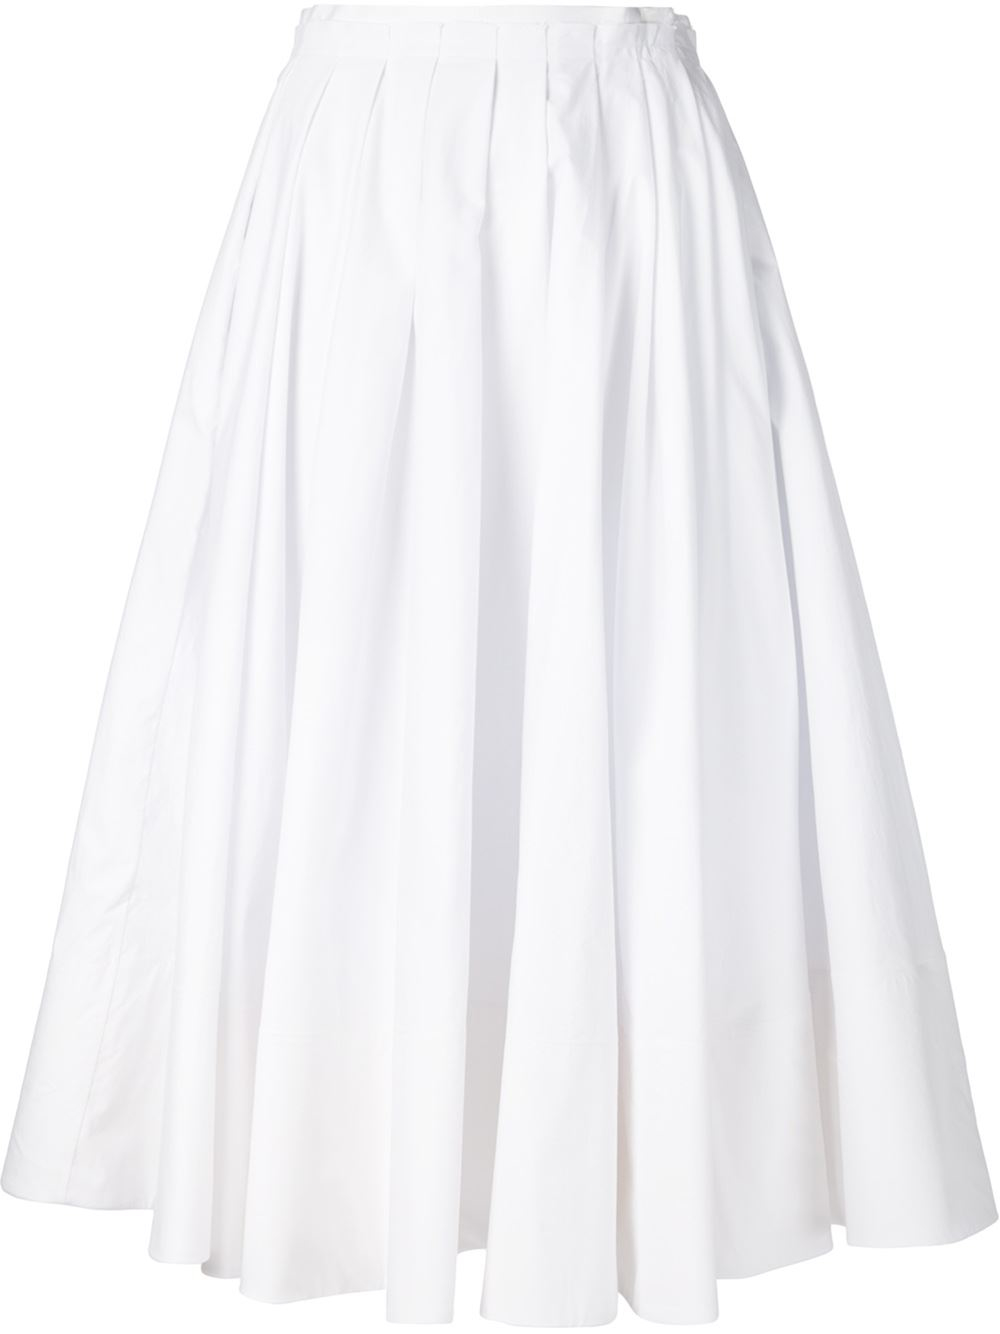 SKIRTS - Knee length skirts Brock Collection With Mastercard How Much Online Free Shipping Top Quality Store Cheap Price 6QjIrOha